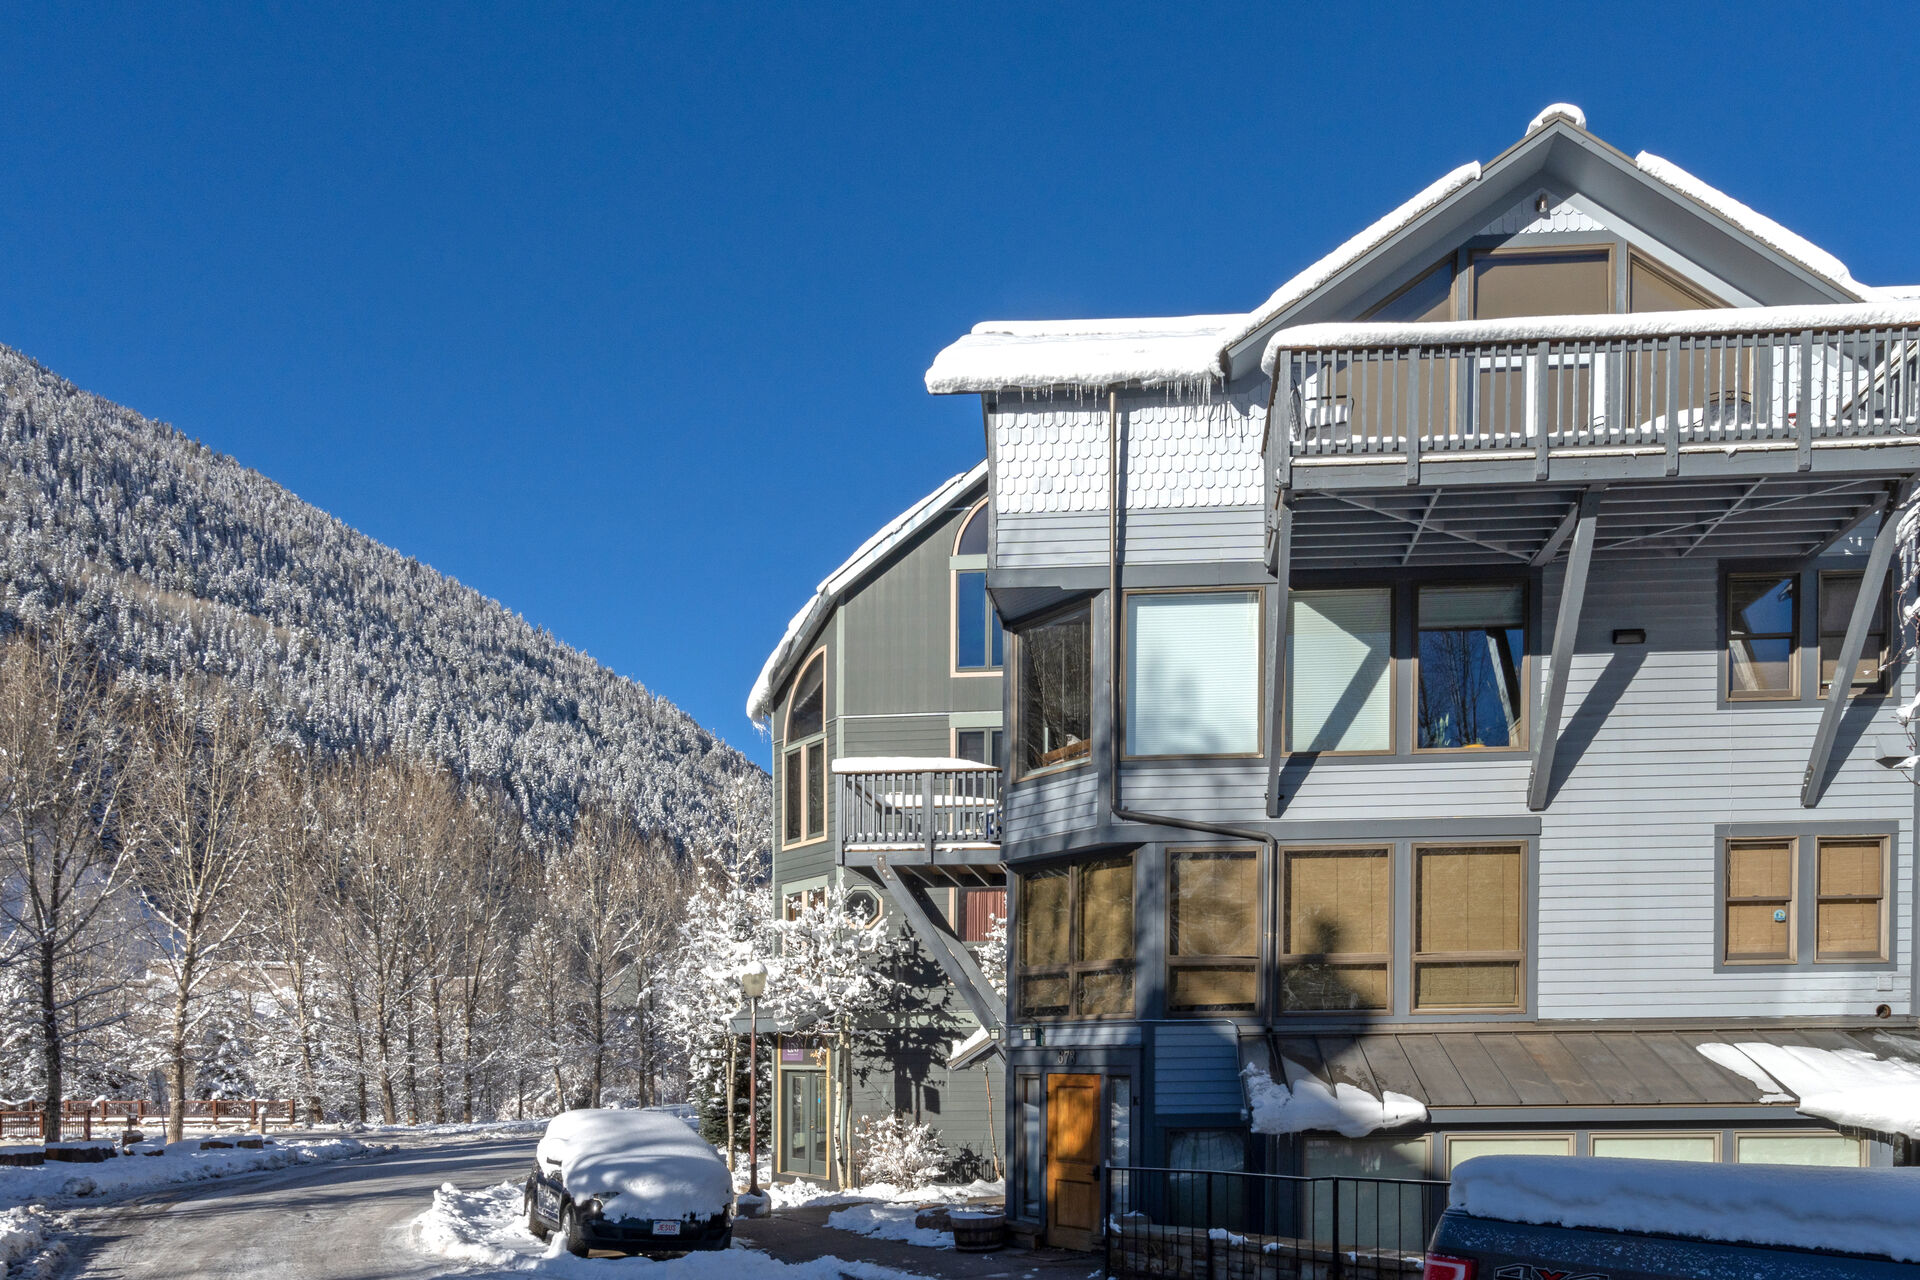 Side view of our Plunge H Telluride vacation condo